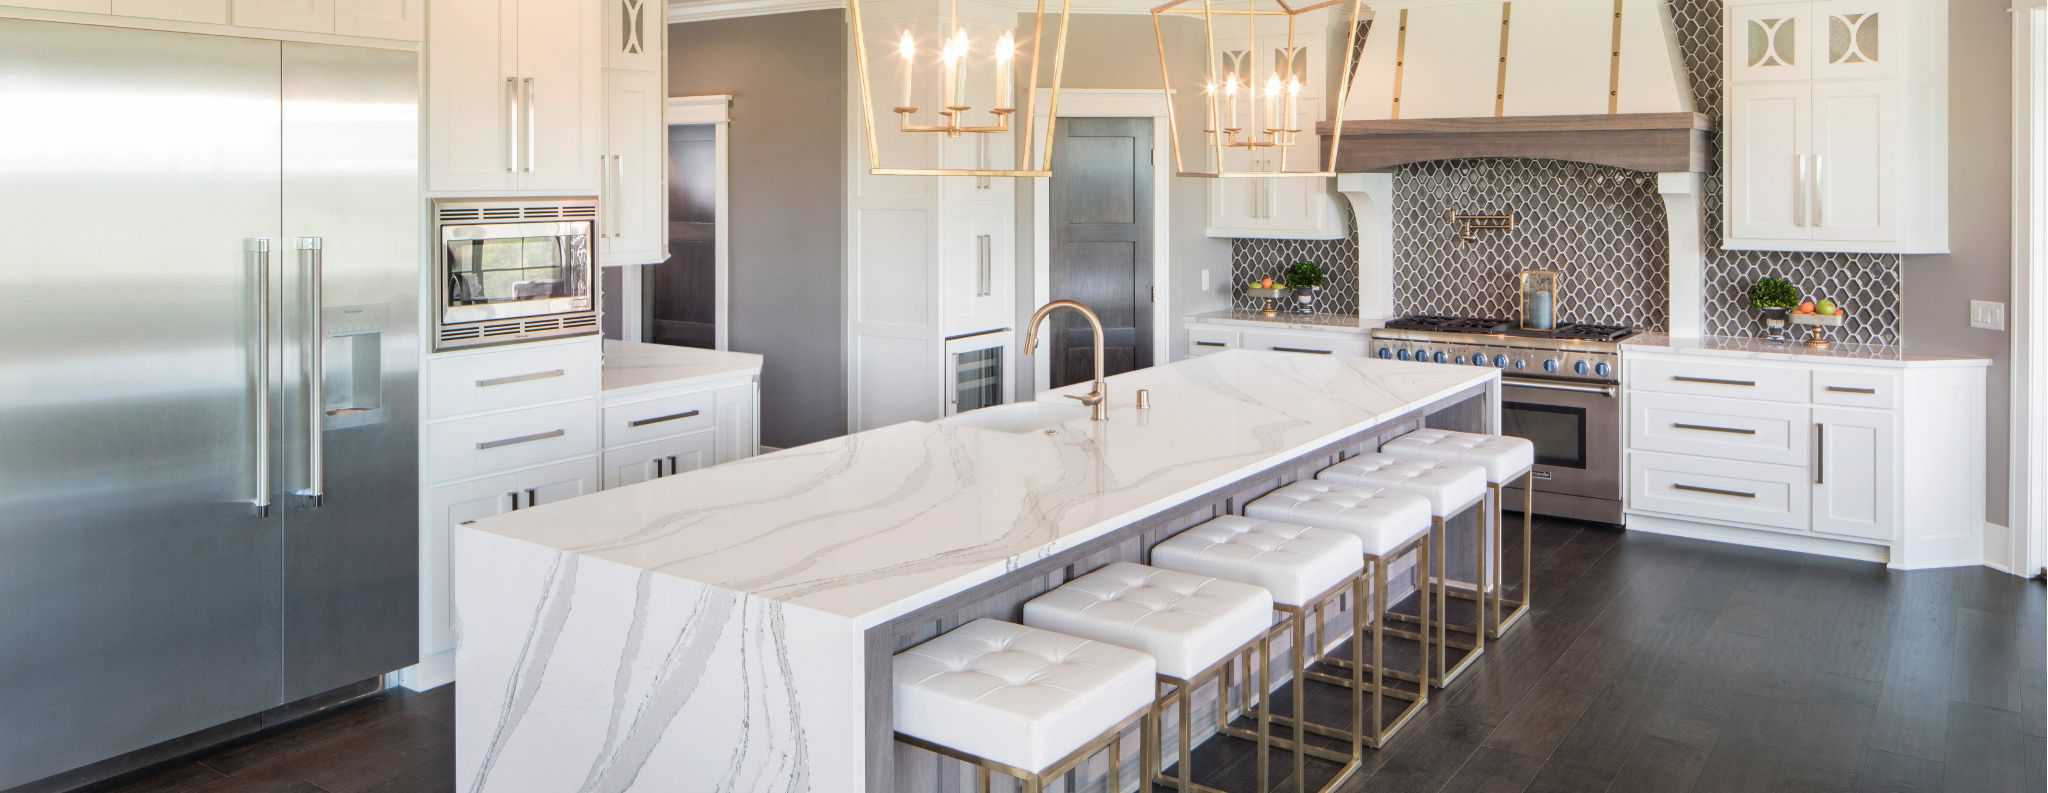 Home Design Trends 2020